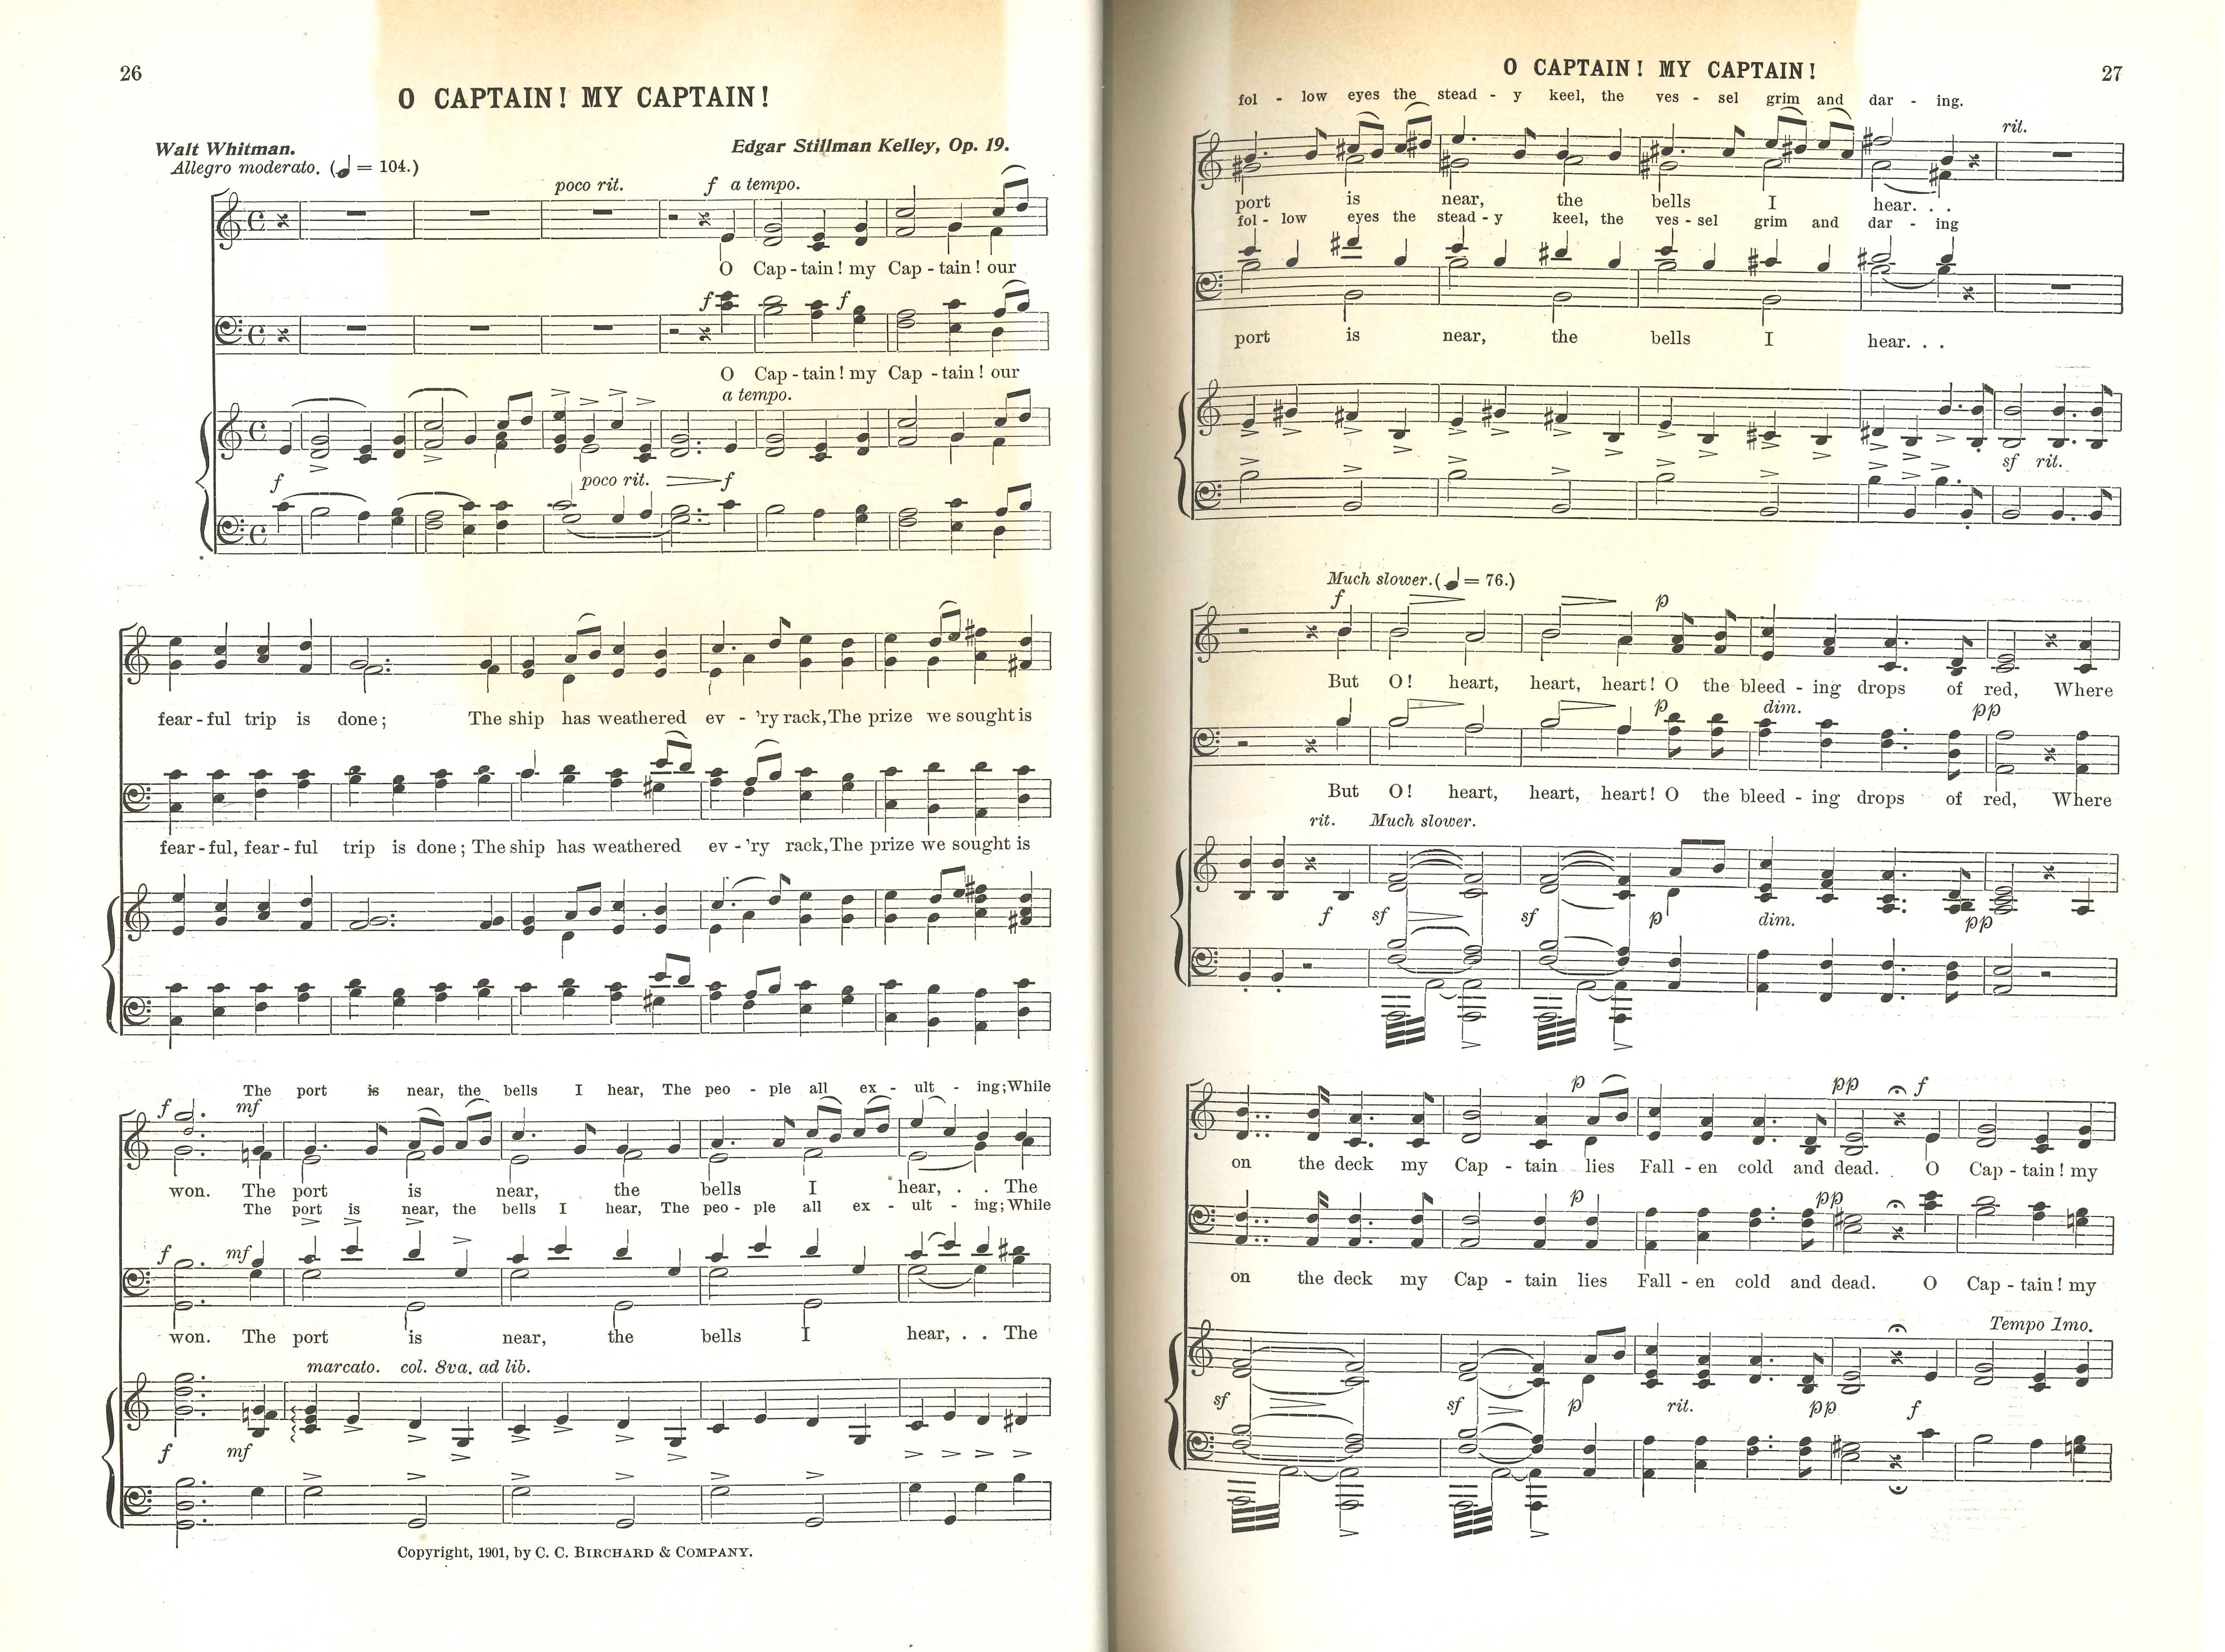 W.L. Tomlins (editor). The Laurel Song Book: for Advanced Classes in Schools, Academies, Choral Societies, etc. Boston: C.C. Birchard & Company, 1901.